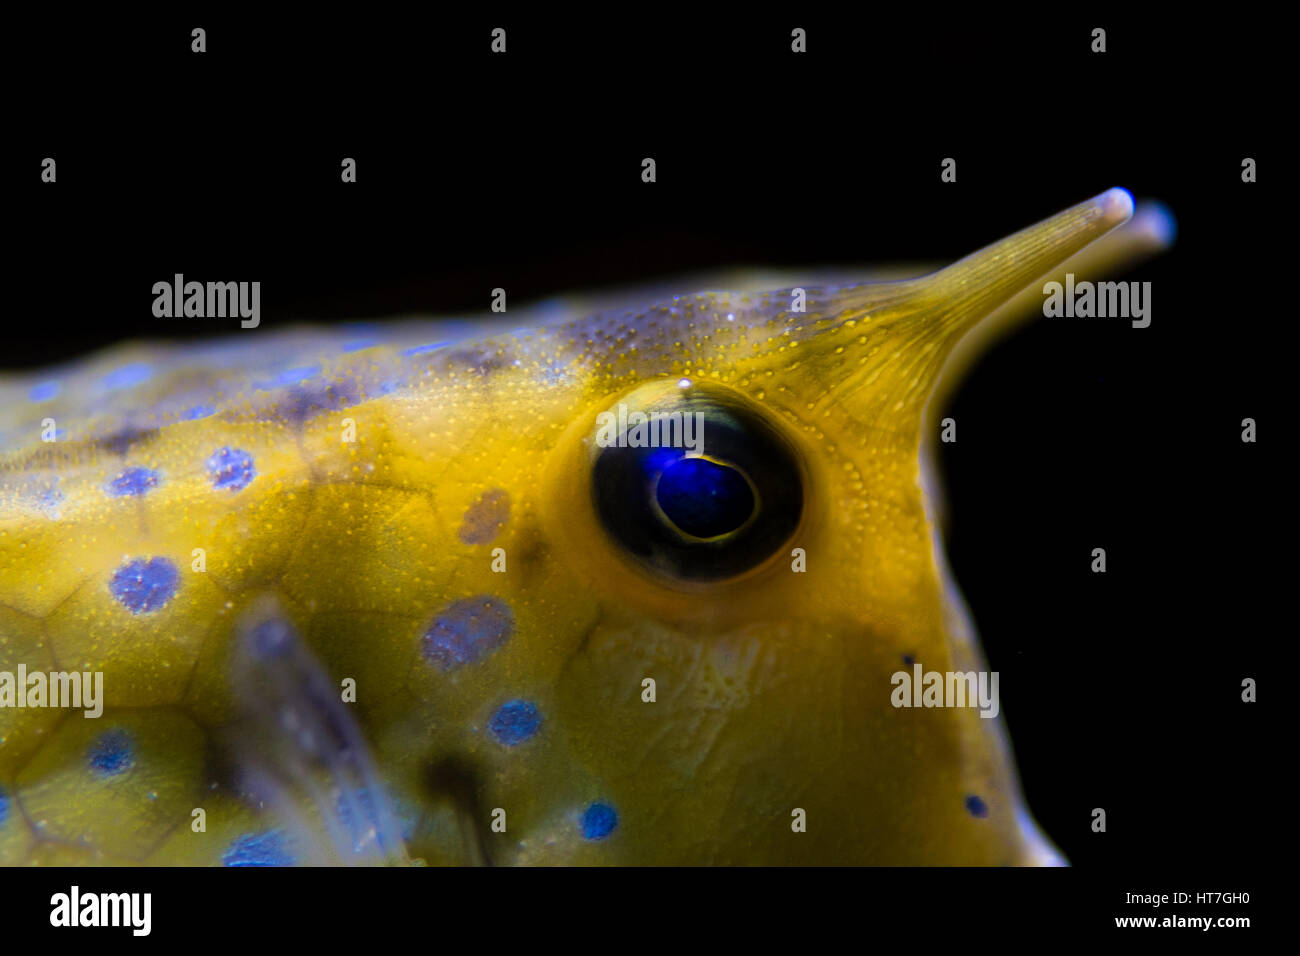 longhorn cowfish lactoria cornuta head and horns detail of indo pacific reef